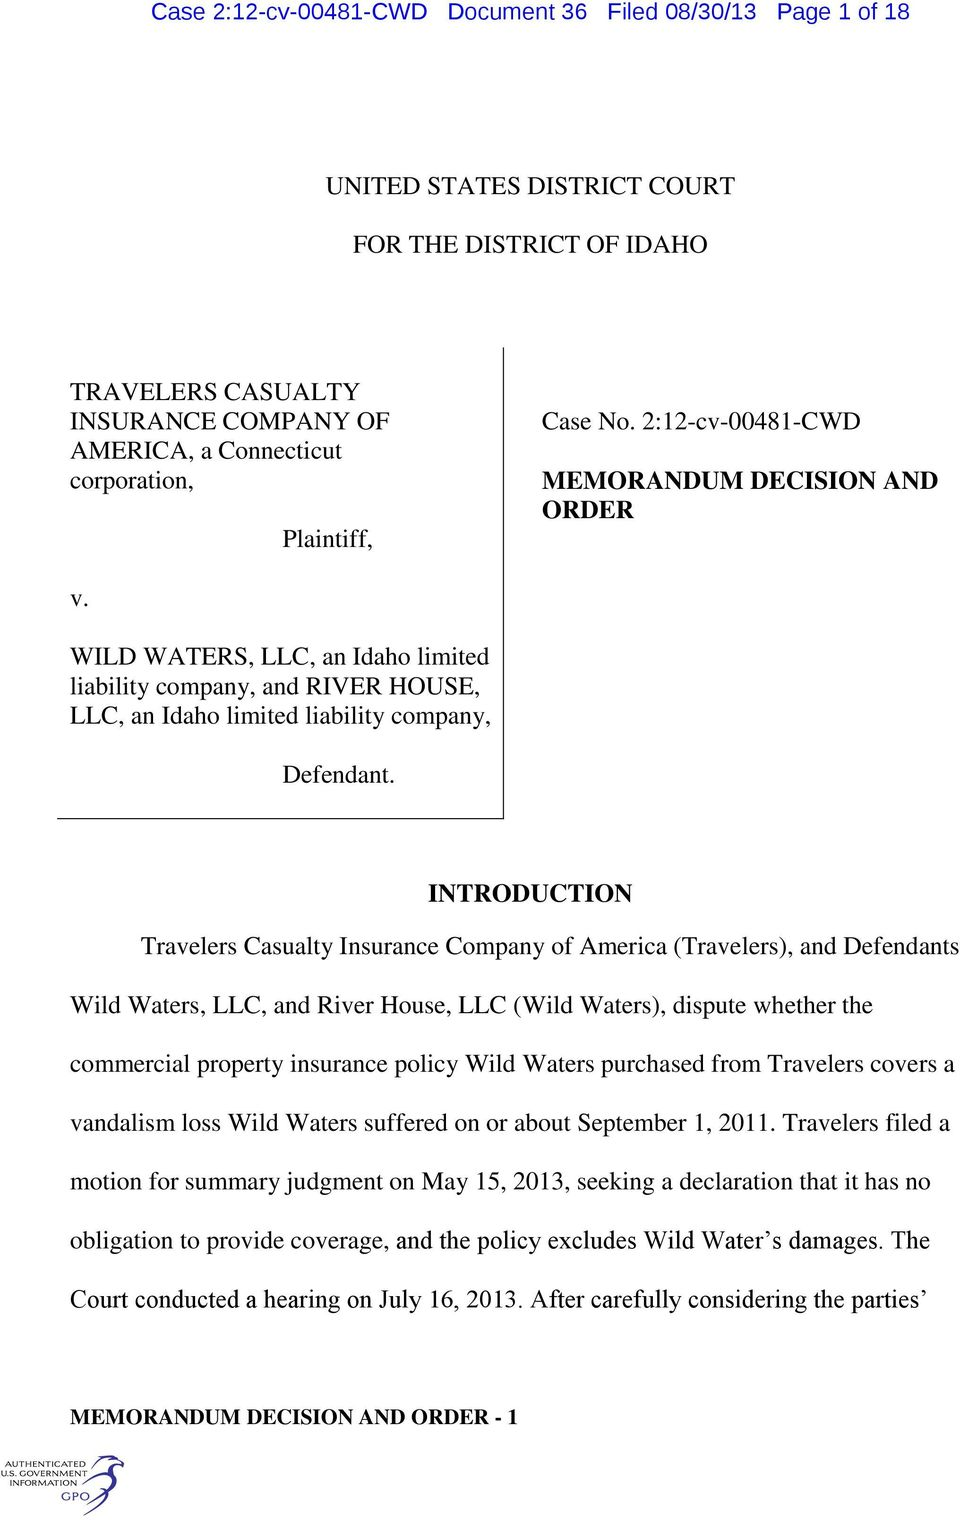 INTRODUCTION Travelers Casualty Insurance Company of America (Travelers), and Defendants Wild Waters, LLC, and River House, LLC (Wild Waters), dispute whether the commercial property insurance policy